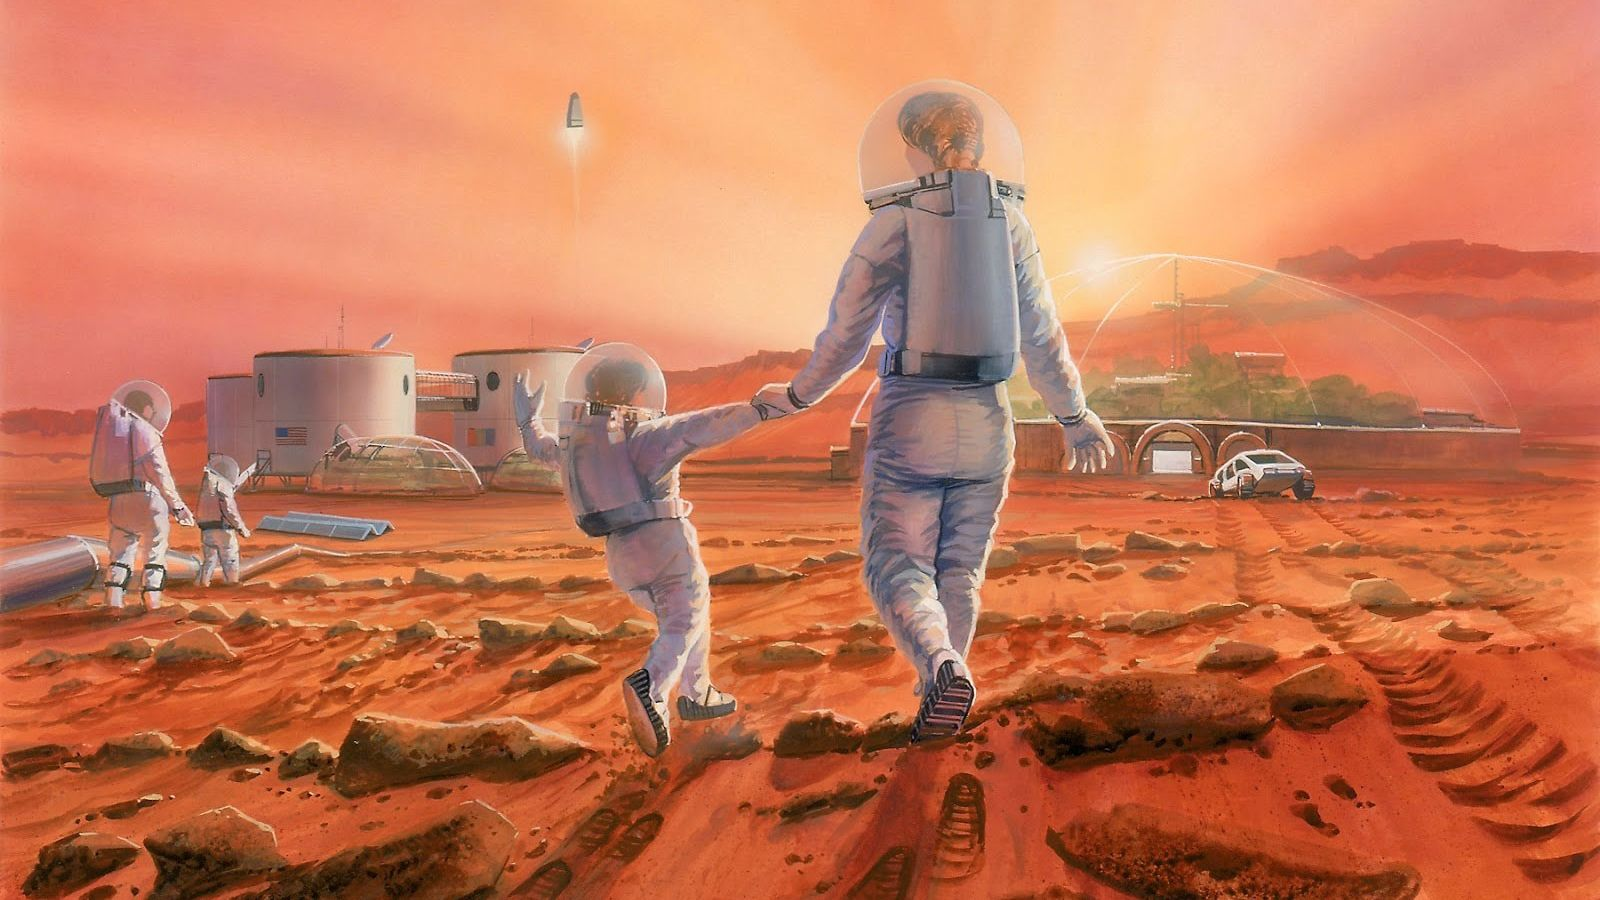 A family frolics on the surface of Mars in an illustration.